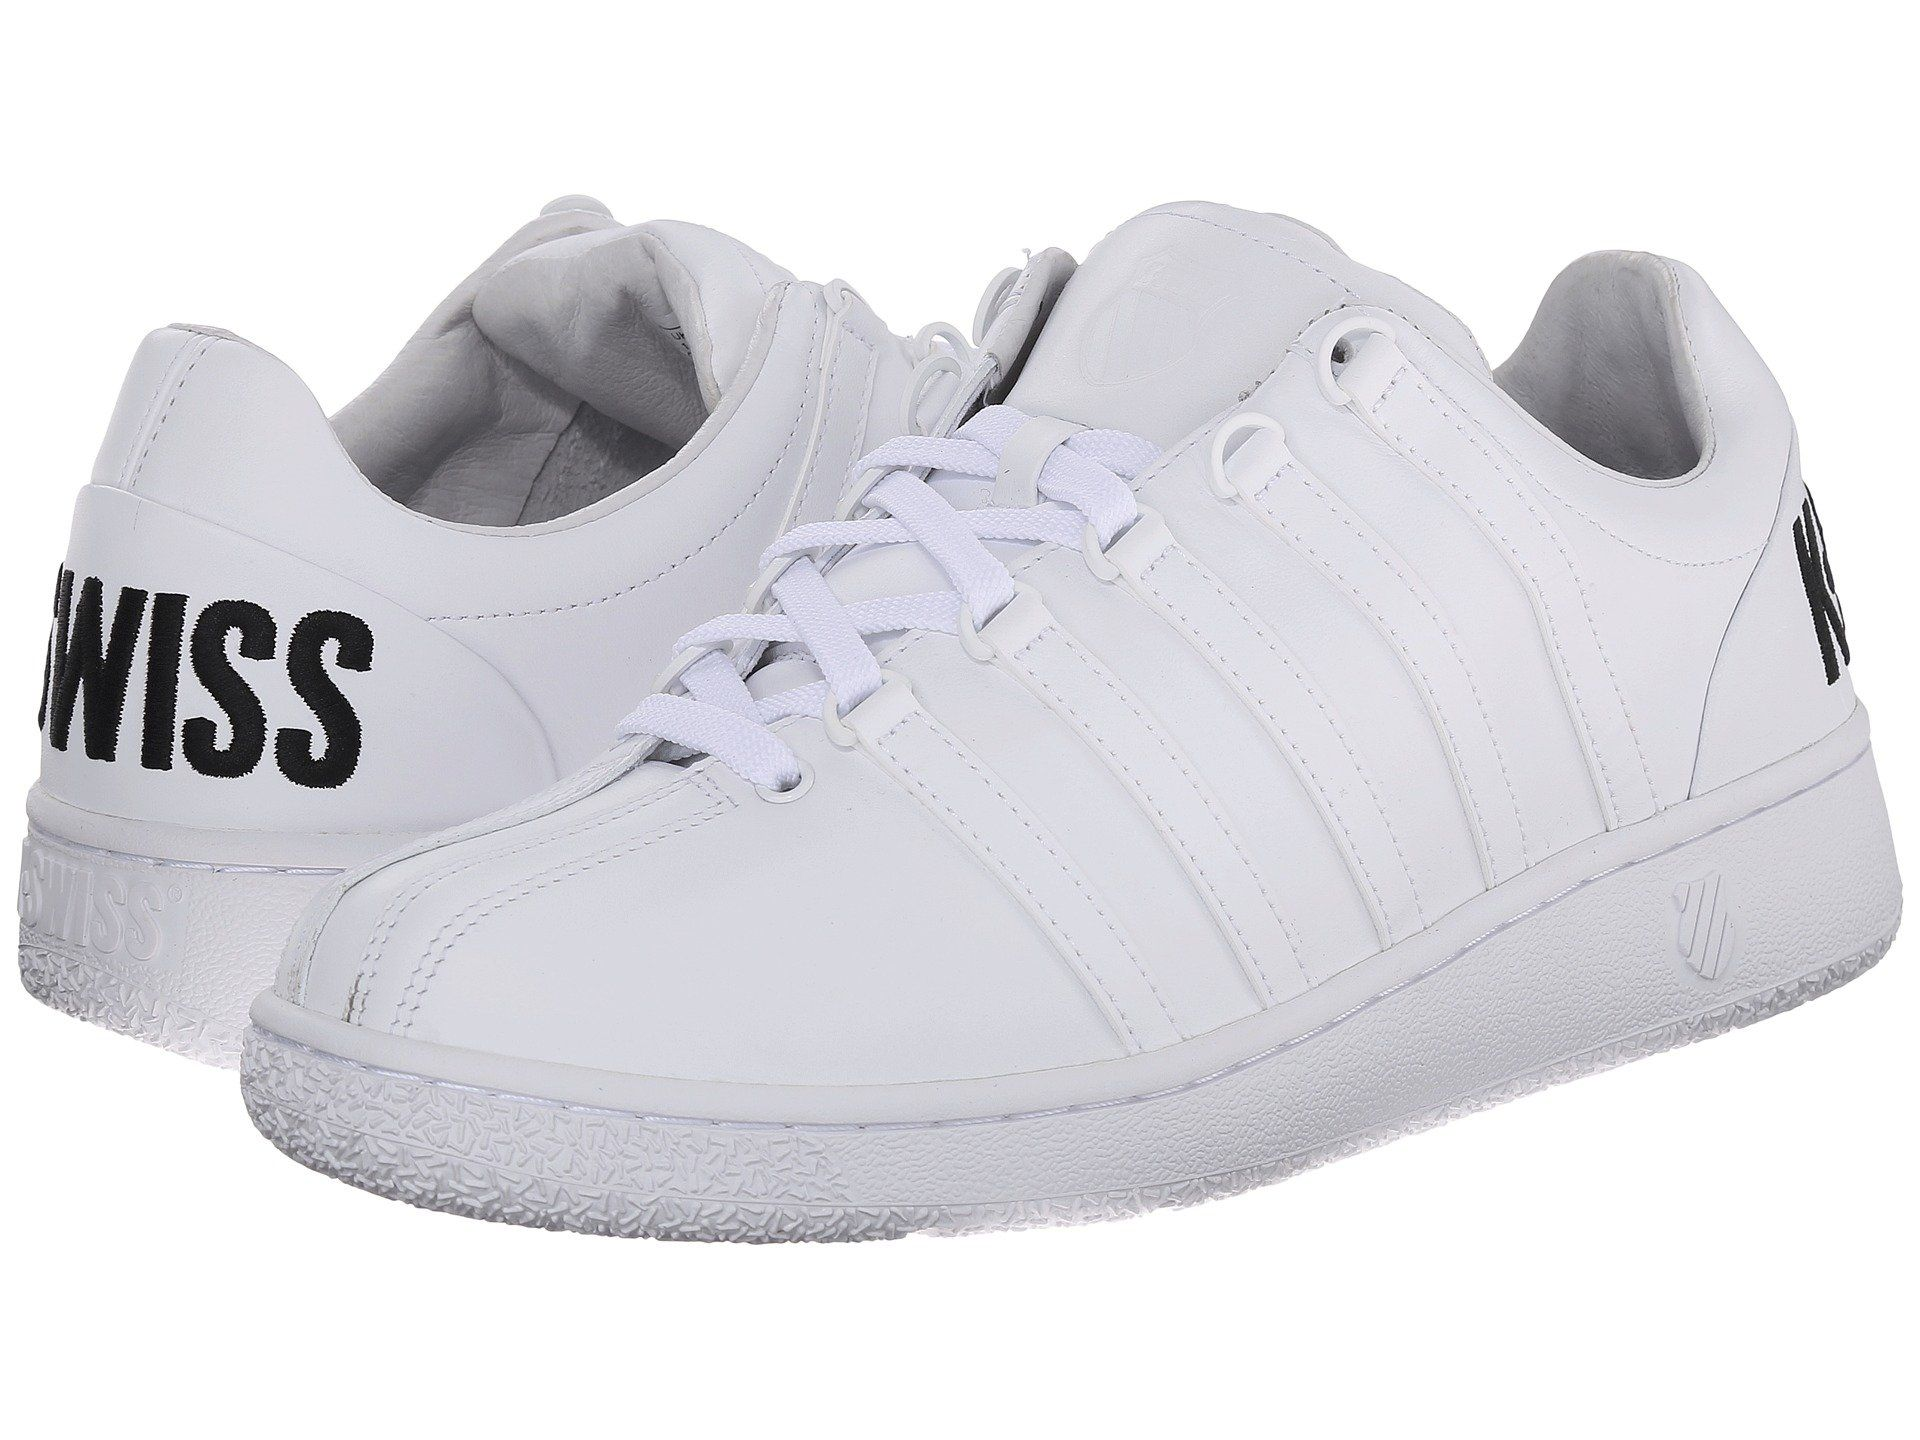 k-swiss shoes from 80 s images collar popping